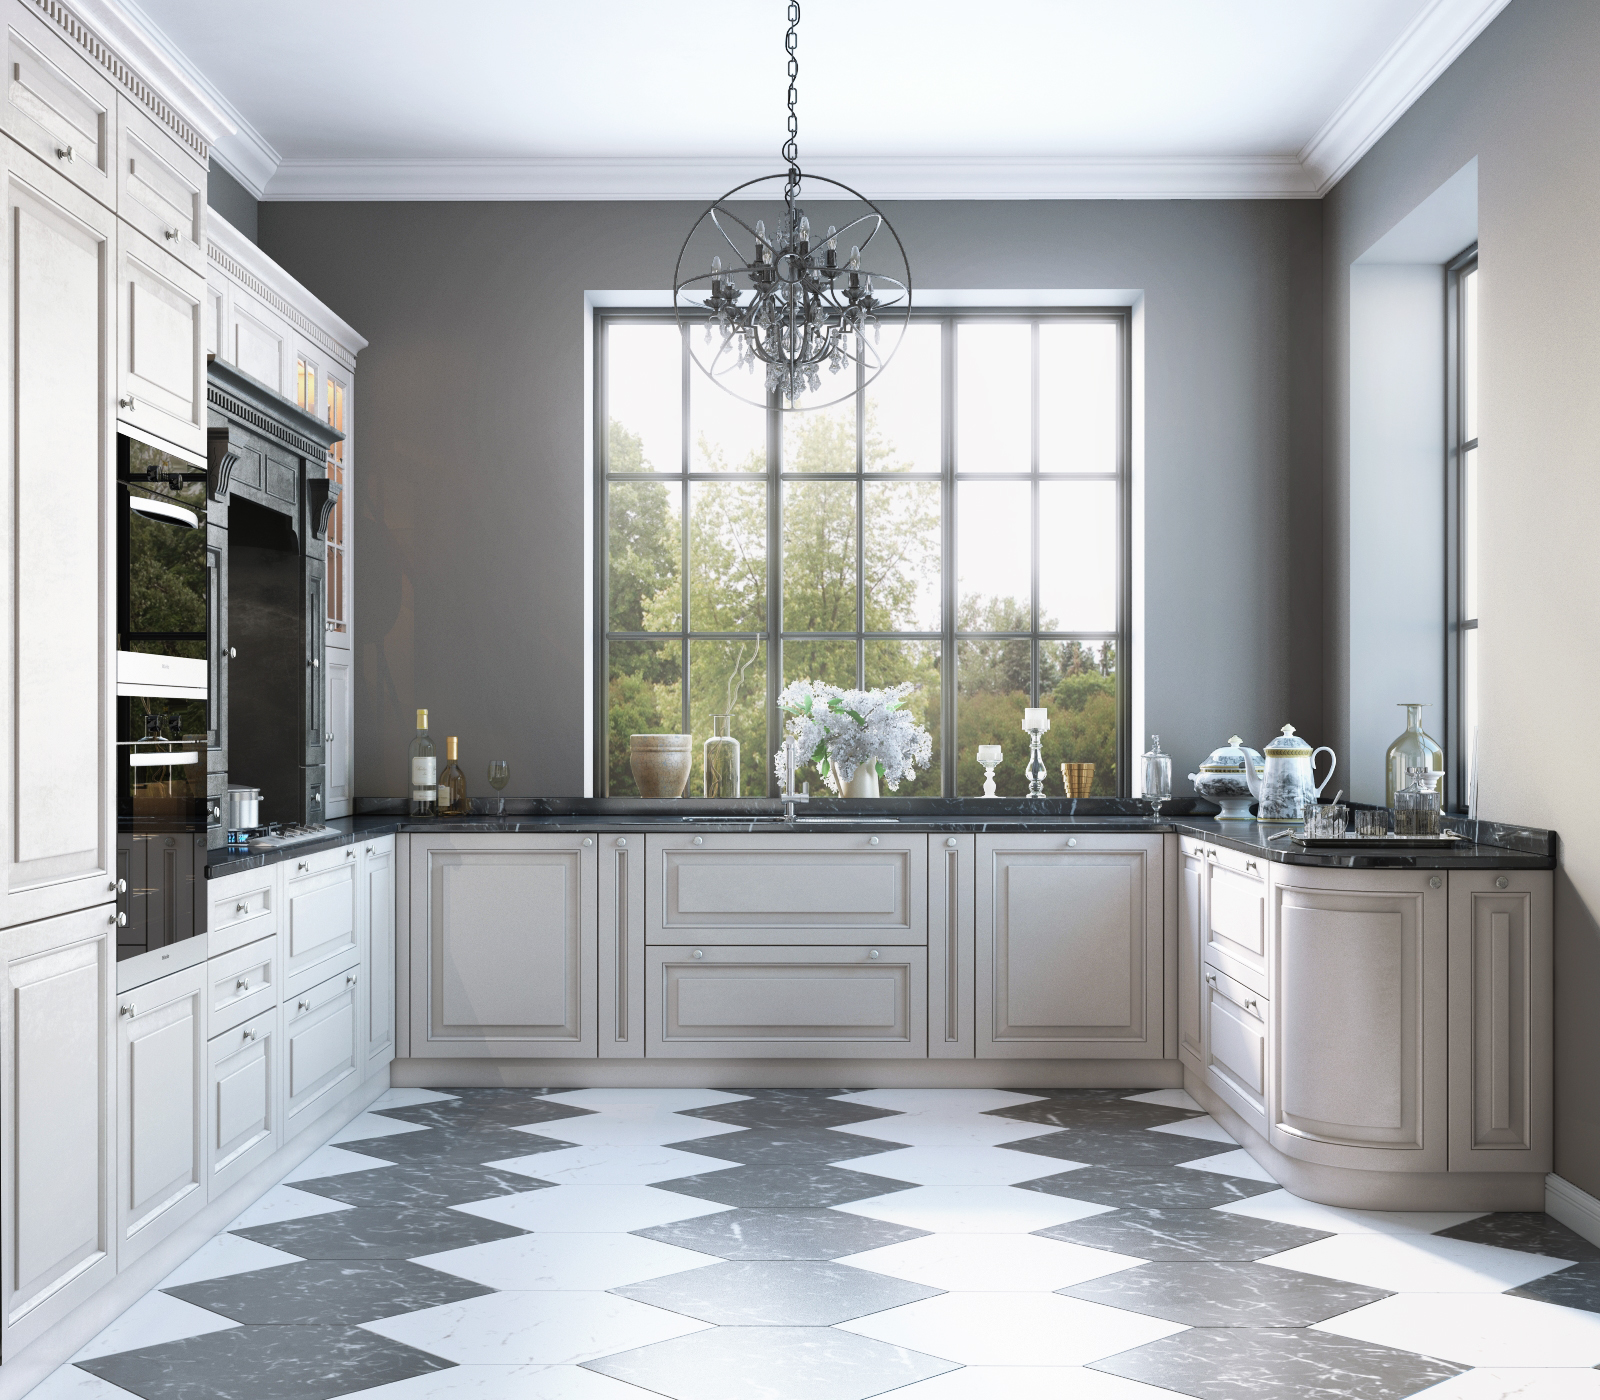 Luxury Italian Kitchens Exclusive Home Interiors Brooklyn Ny Blankslate Pages